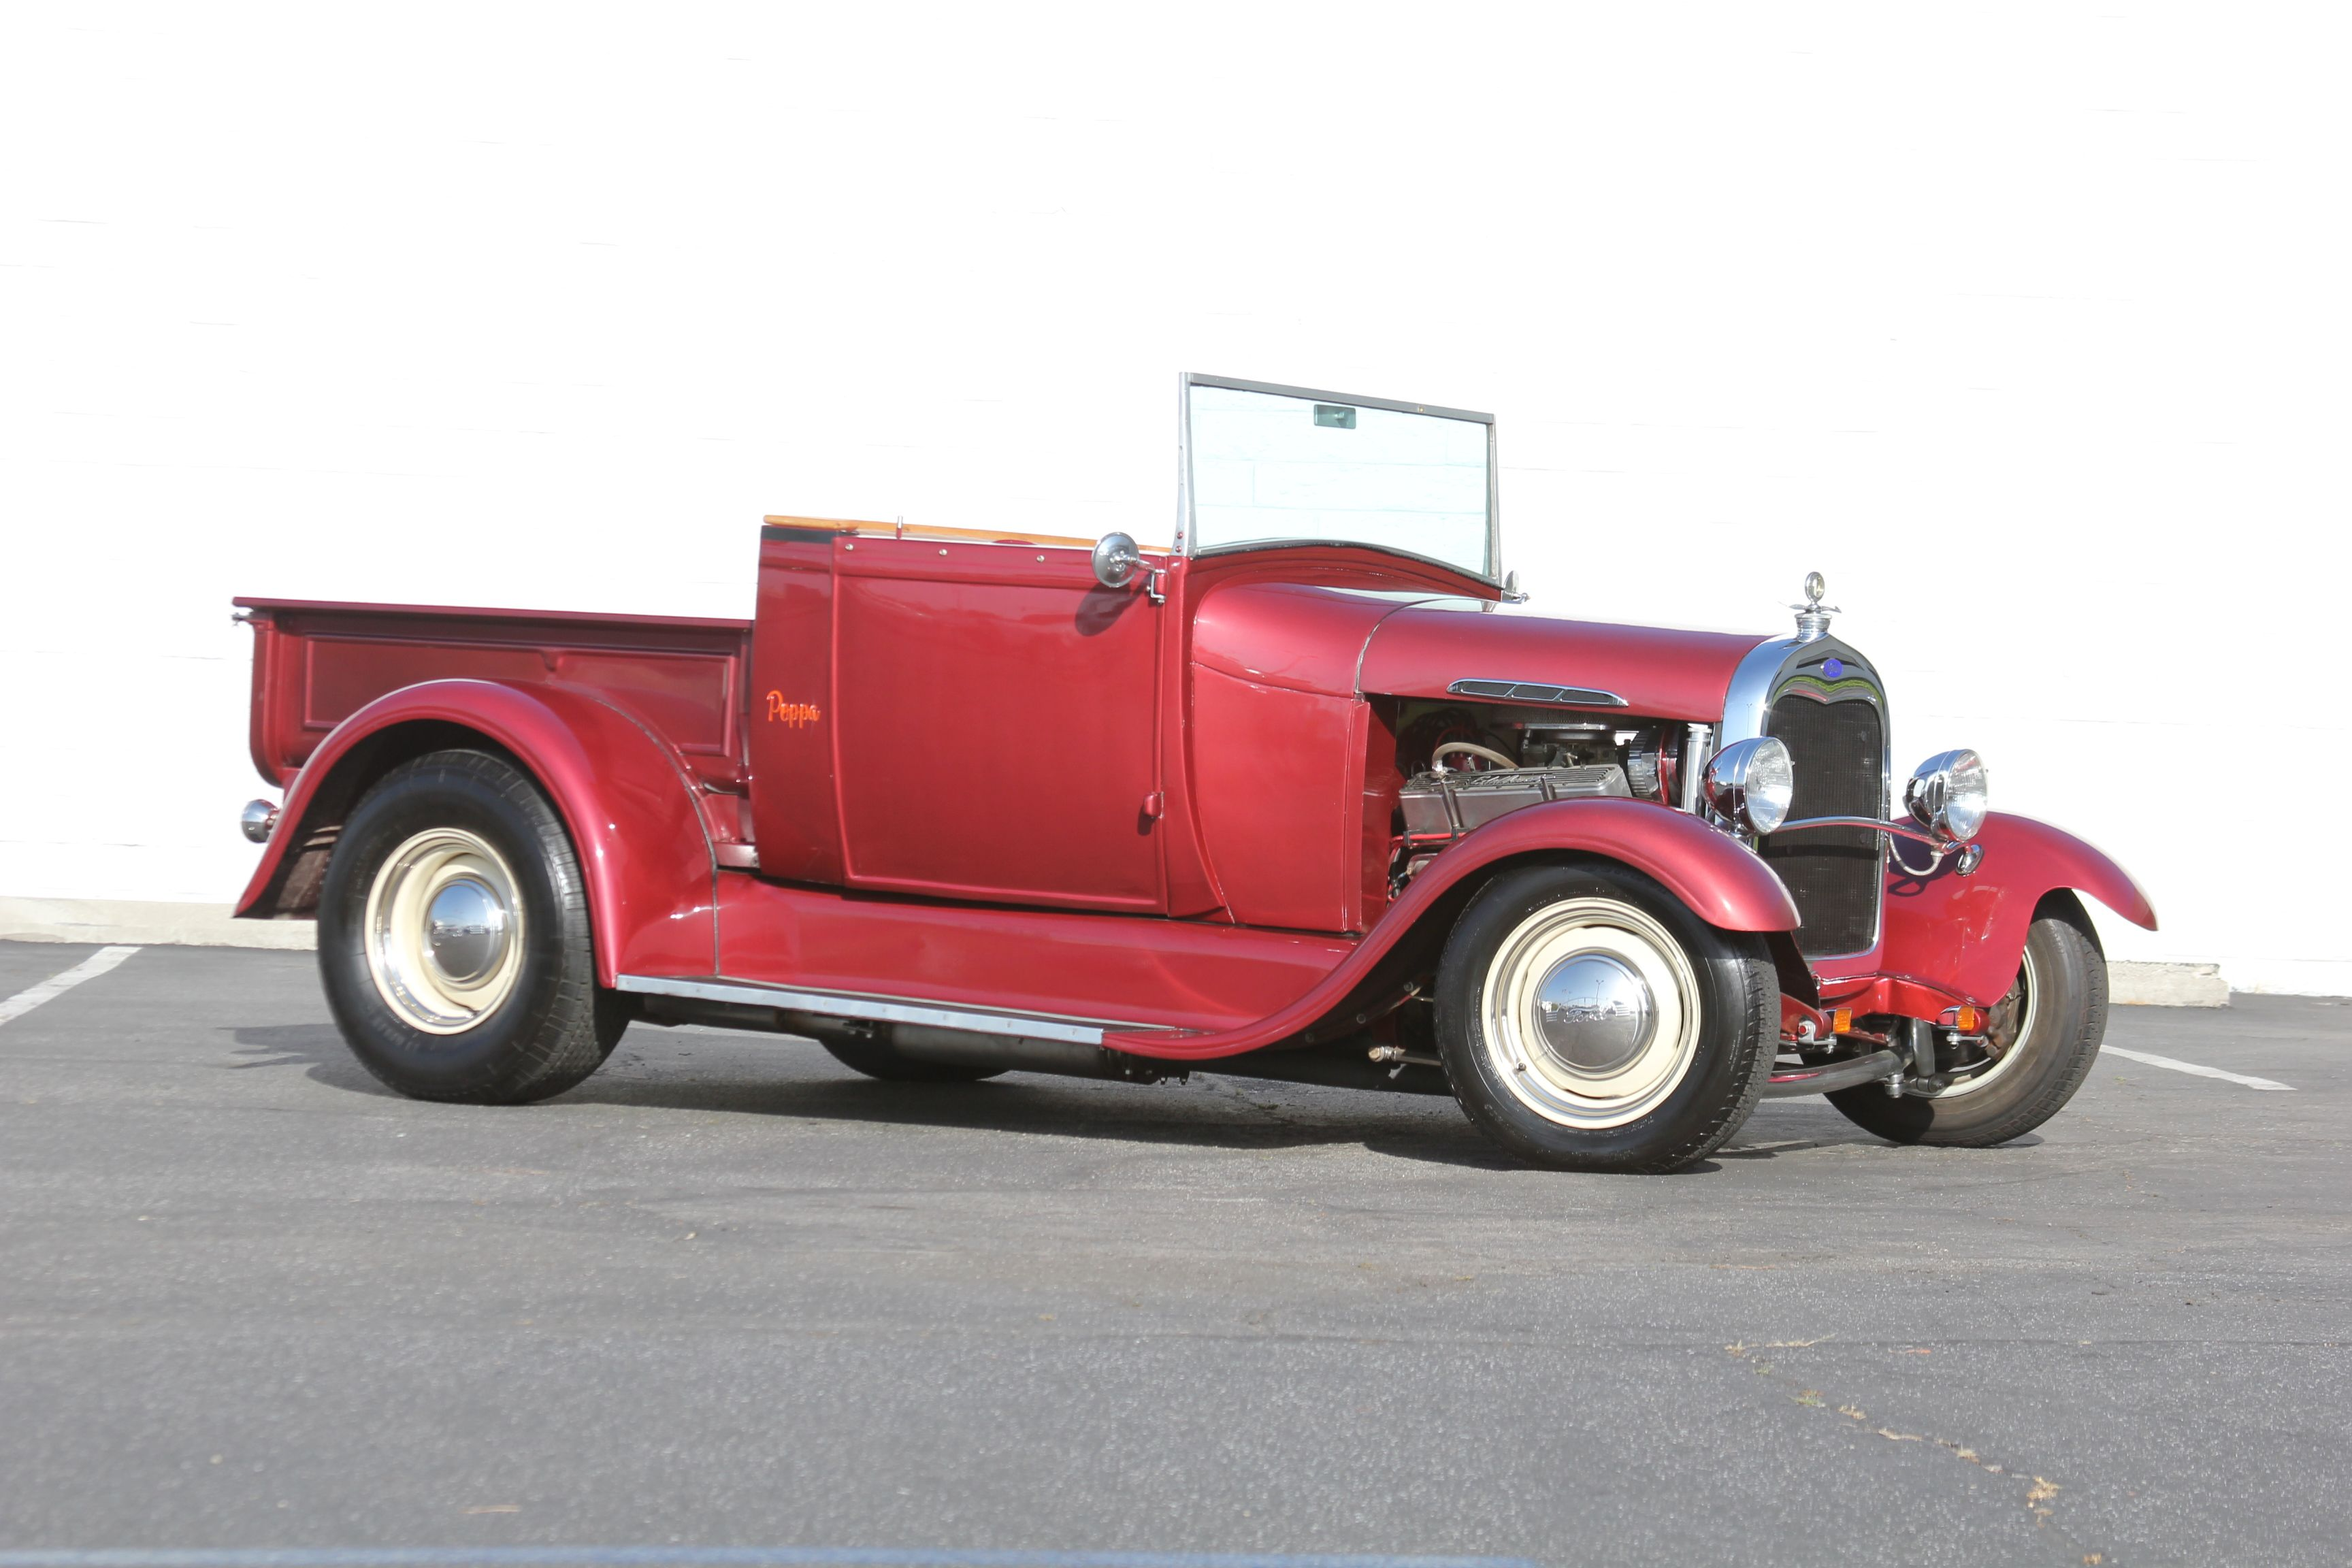 Here is a 1929 Ford Model a roadster pick-up with a 400 ci small ...